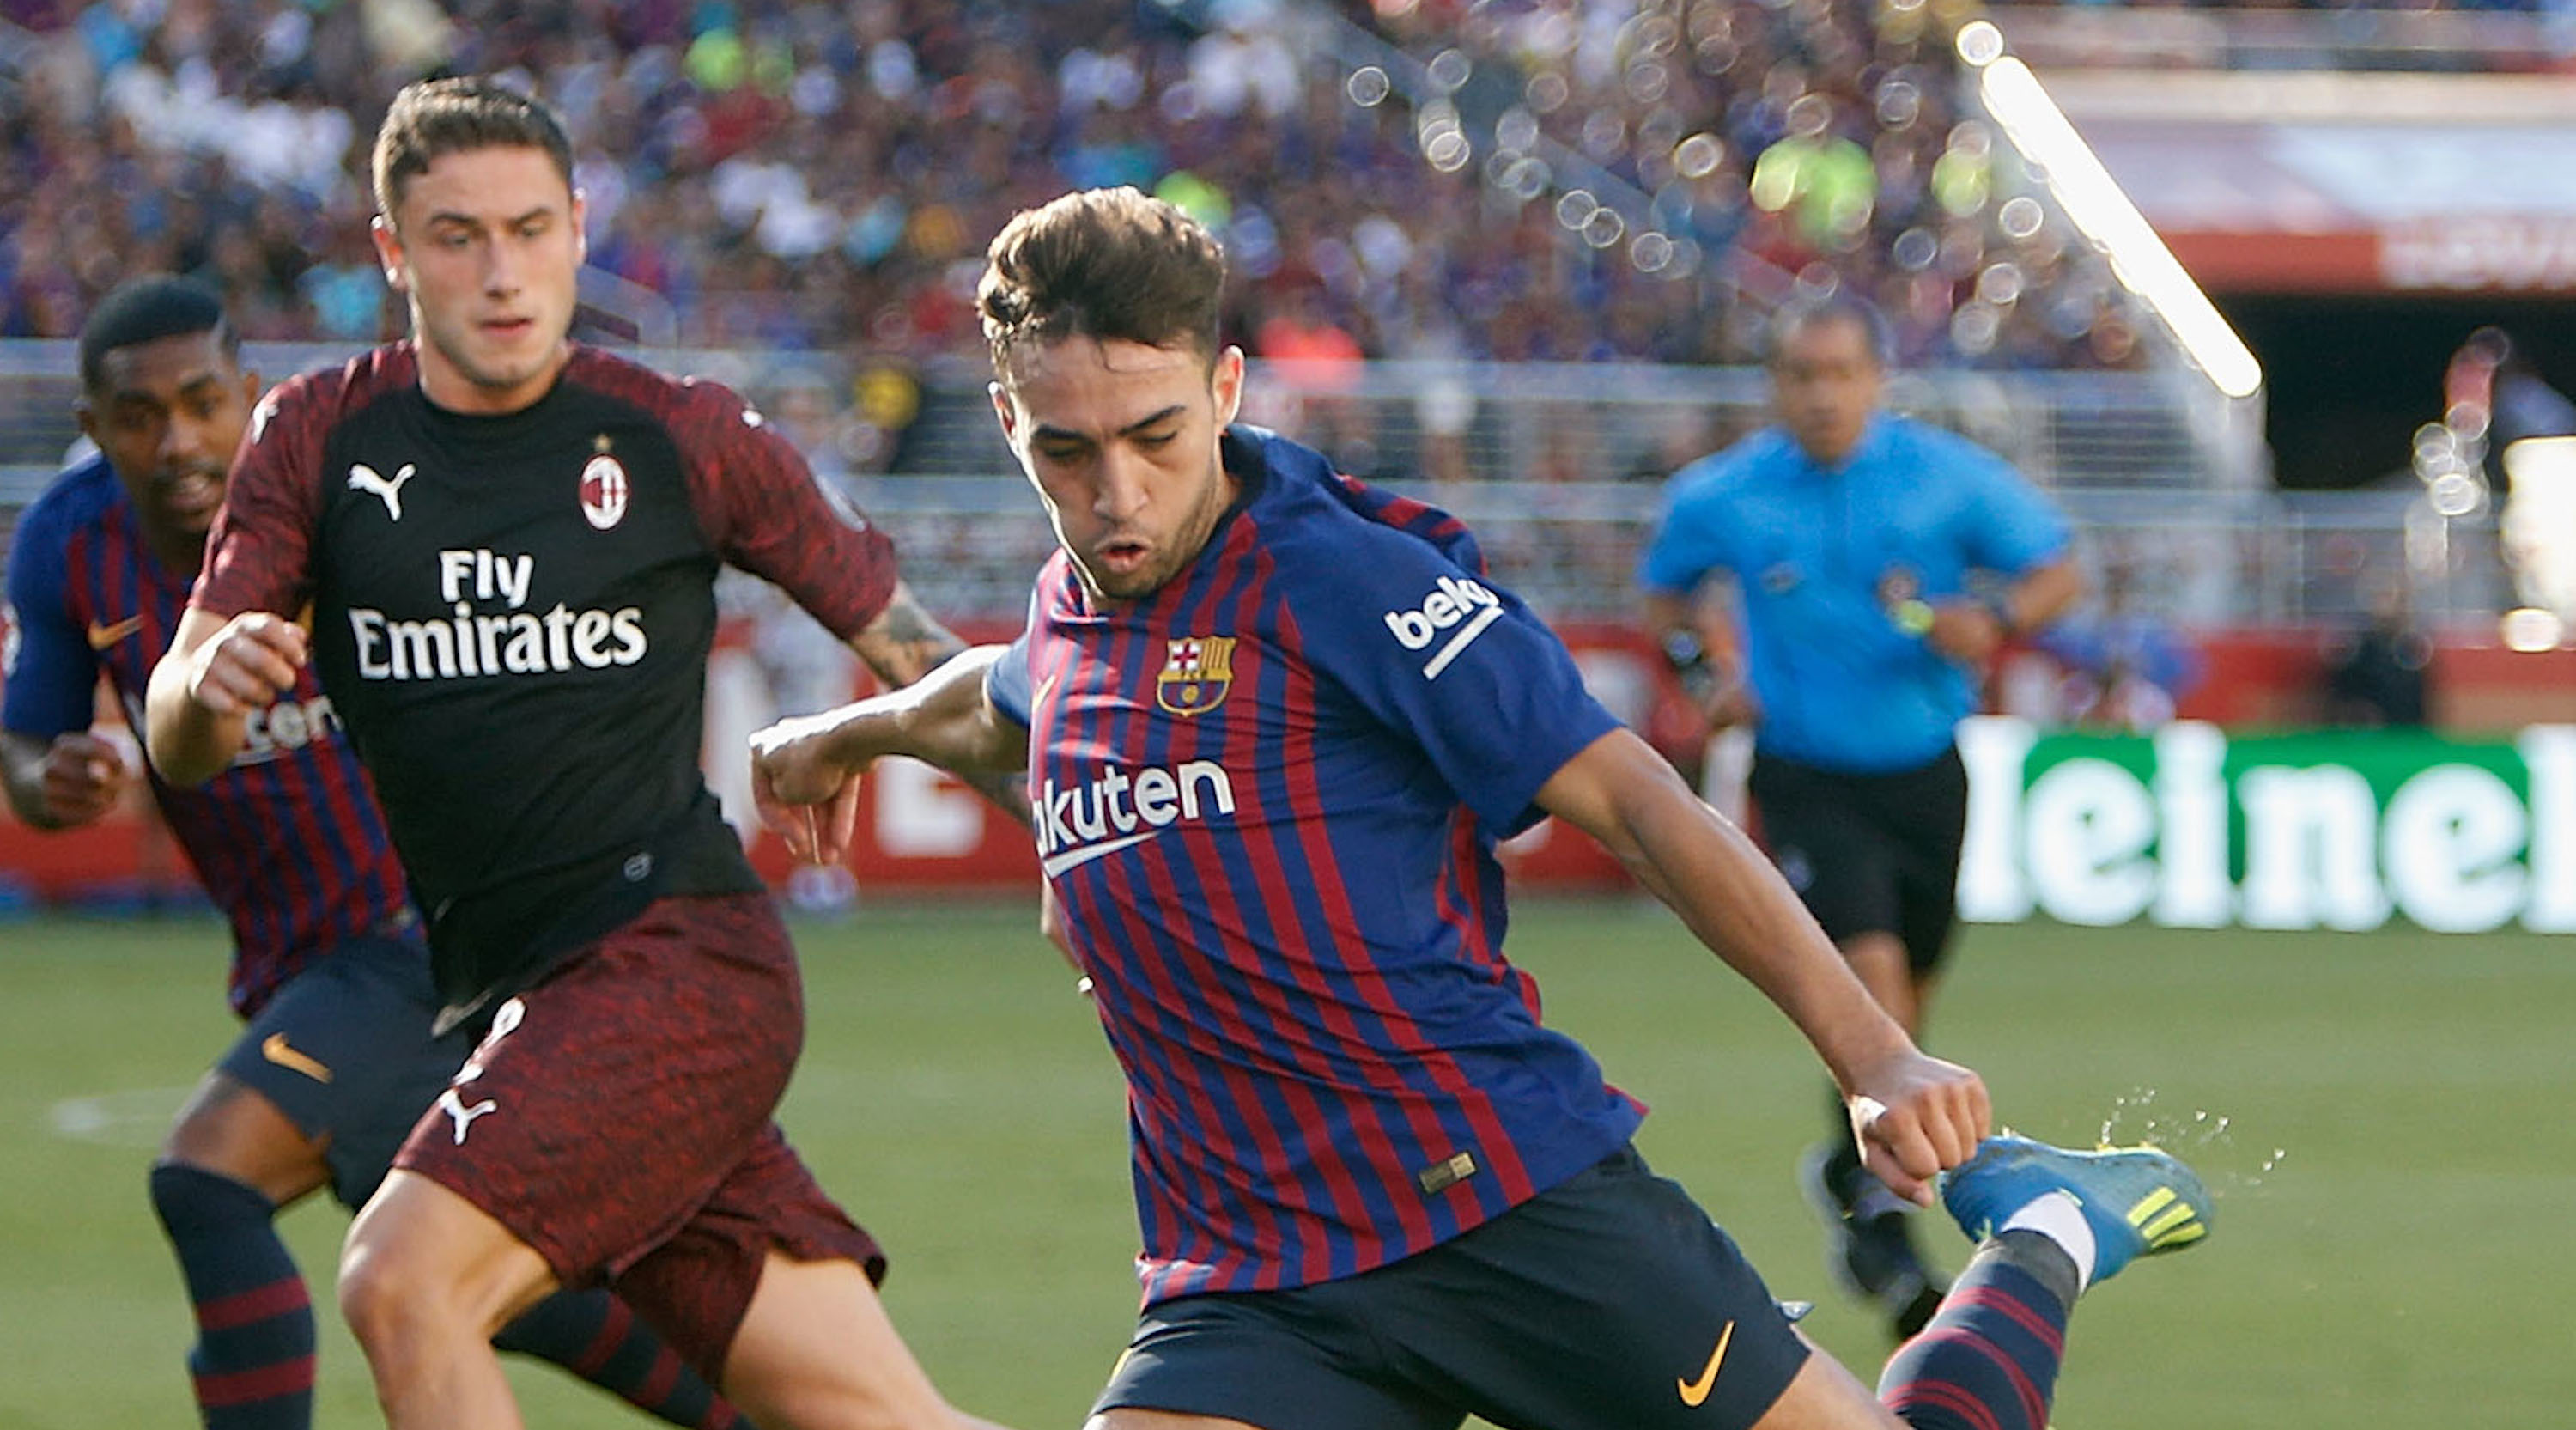 Munir El Haddadi #9 of FC Barcelona shoots at goal during the International Champions Cup match against AC Milan at Levi's Stadium on August 4, 2018 in Santa Clara, California. (Photo by Lachlan Cunningham/Getty Images)